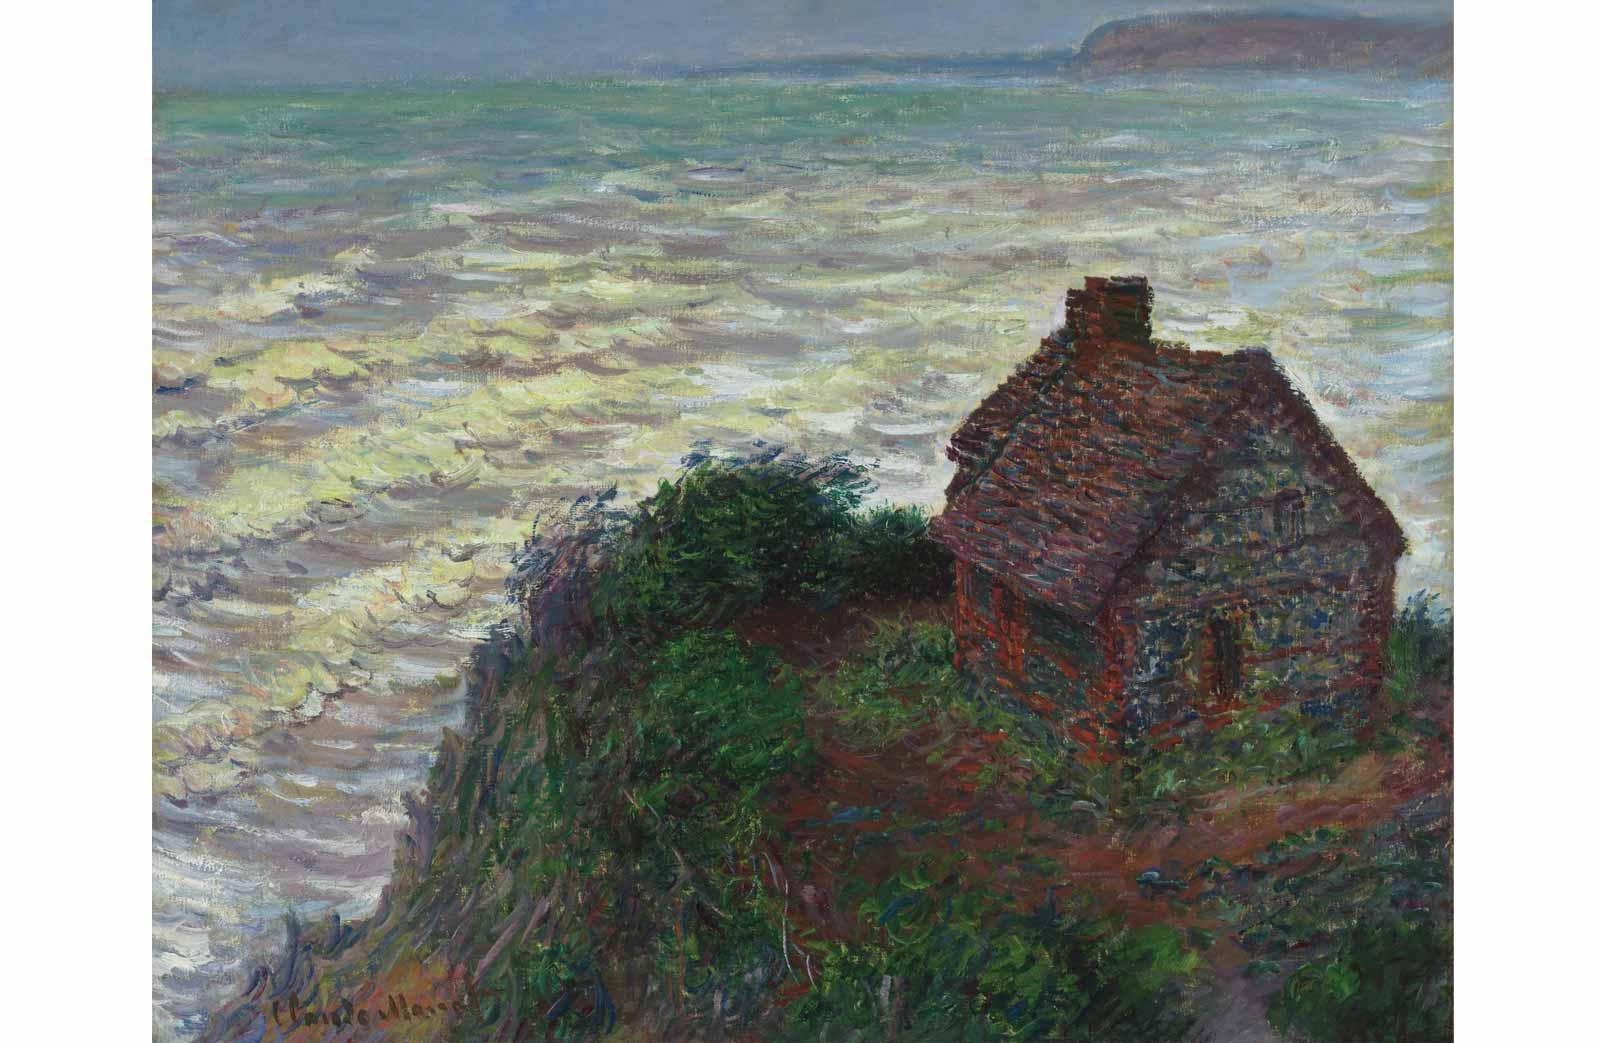 Claude Monet, House of the Customs Officer, Varengeville, 1882.